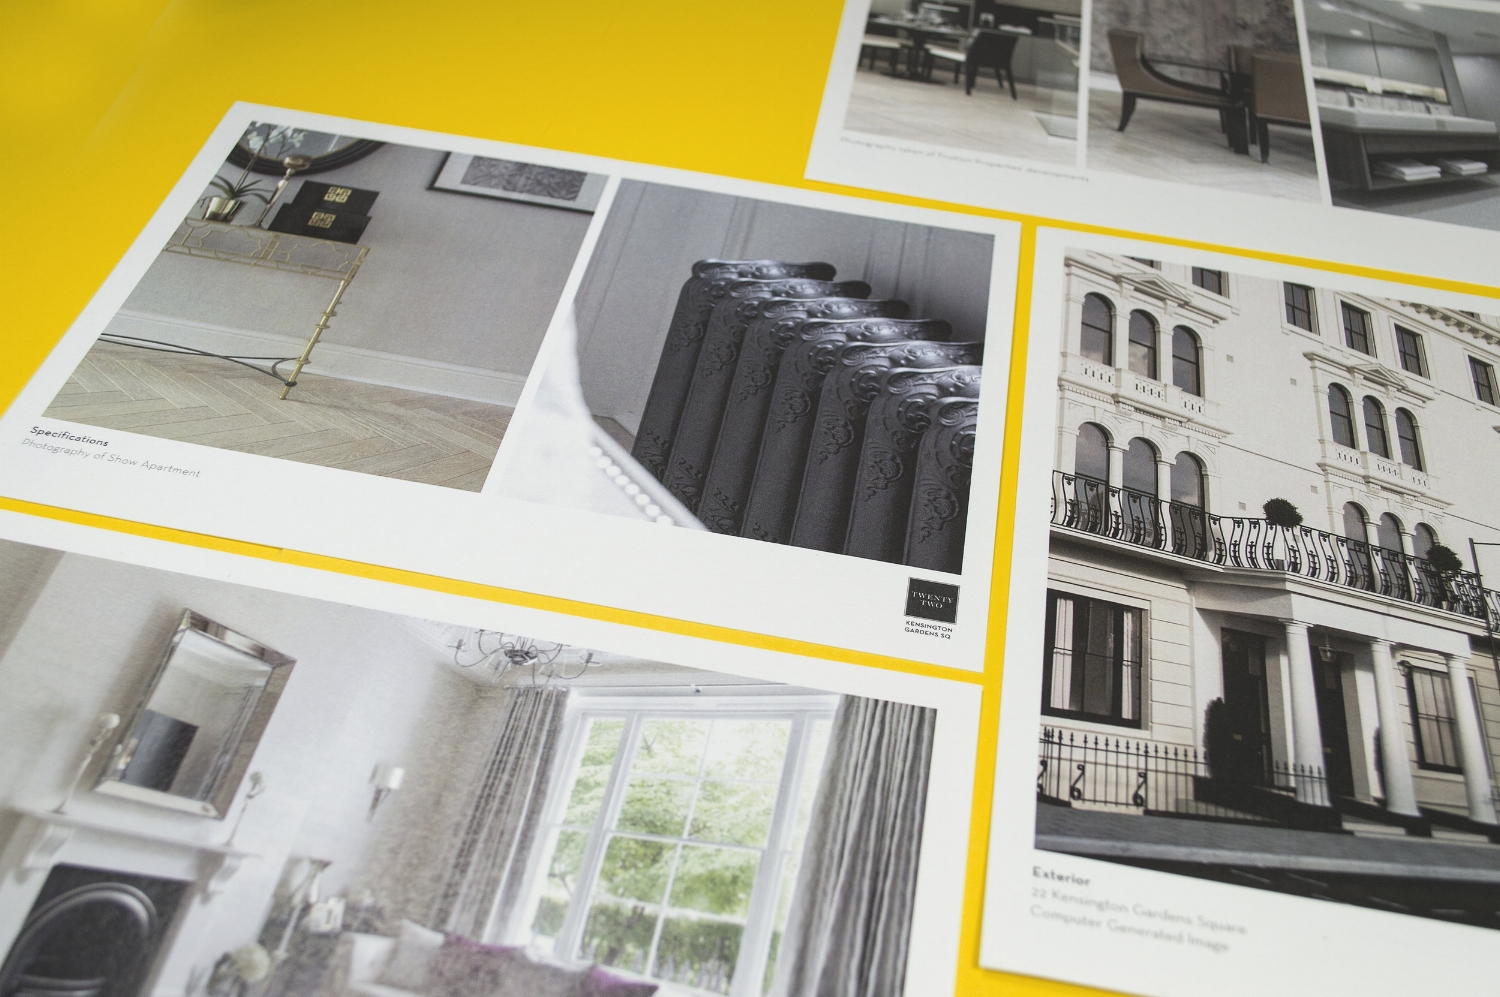 onebigcompany-design-london-art-direction-property-marketing-brochure-kensington-gardens-6.jpg